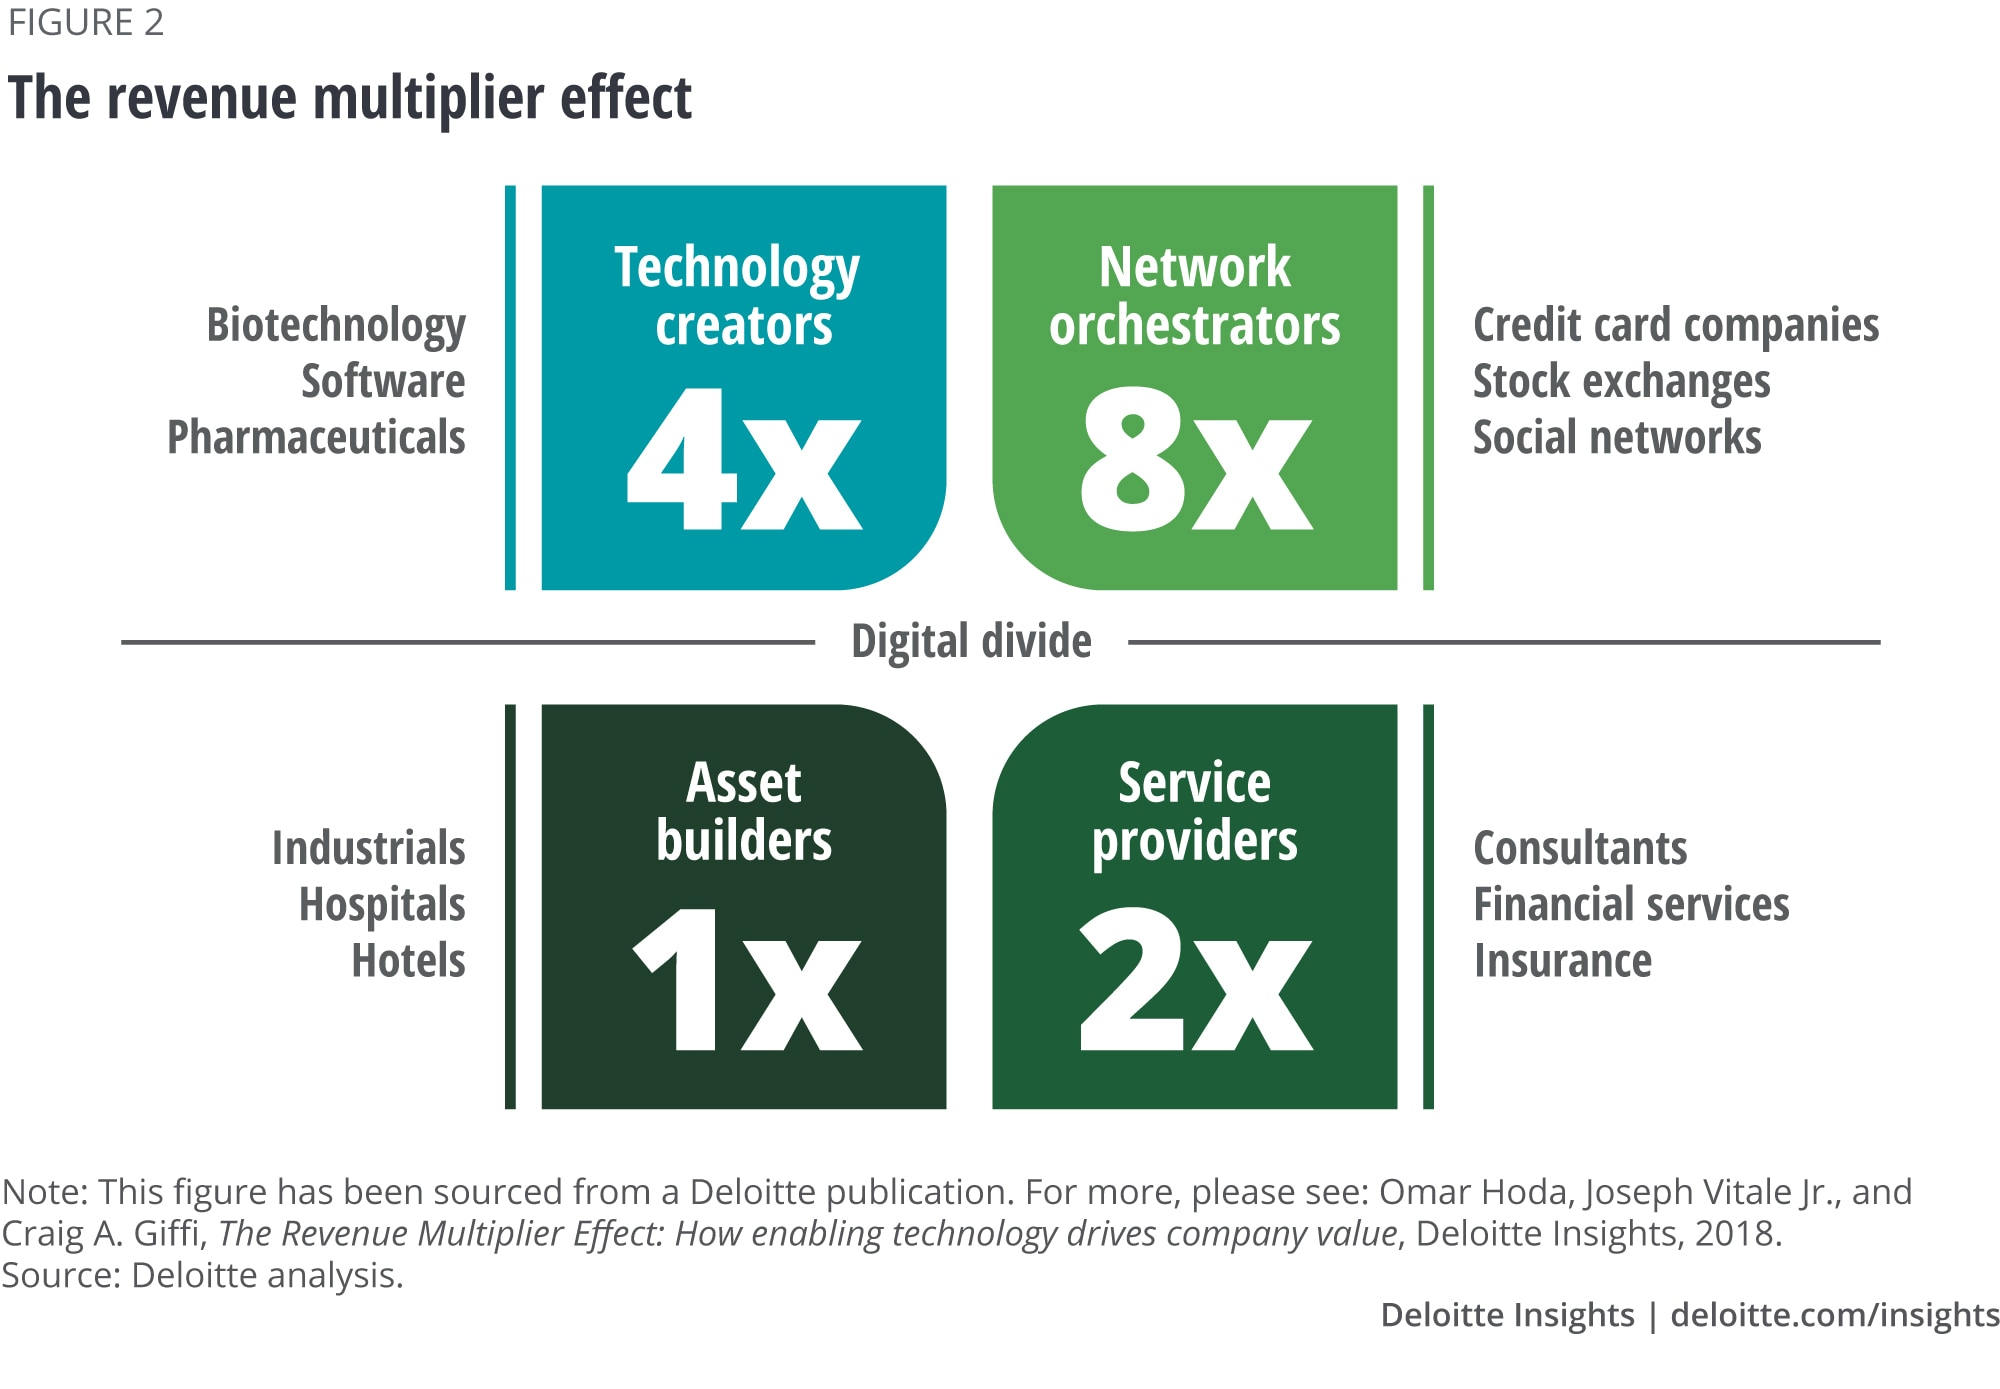 Figure 2. The revenue multiplier effect